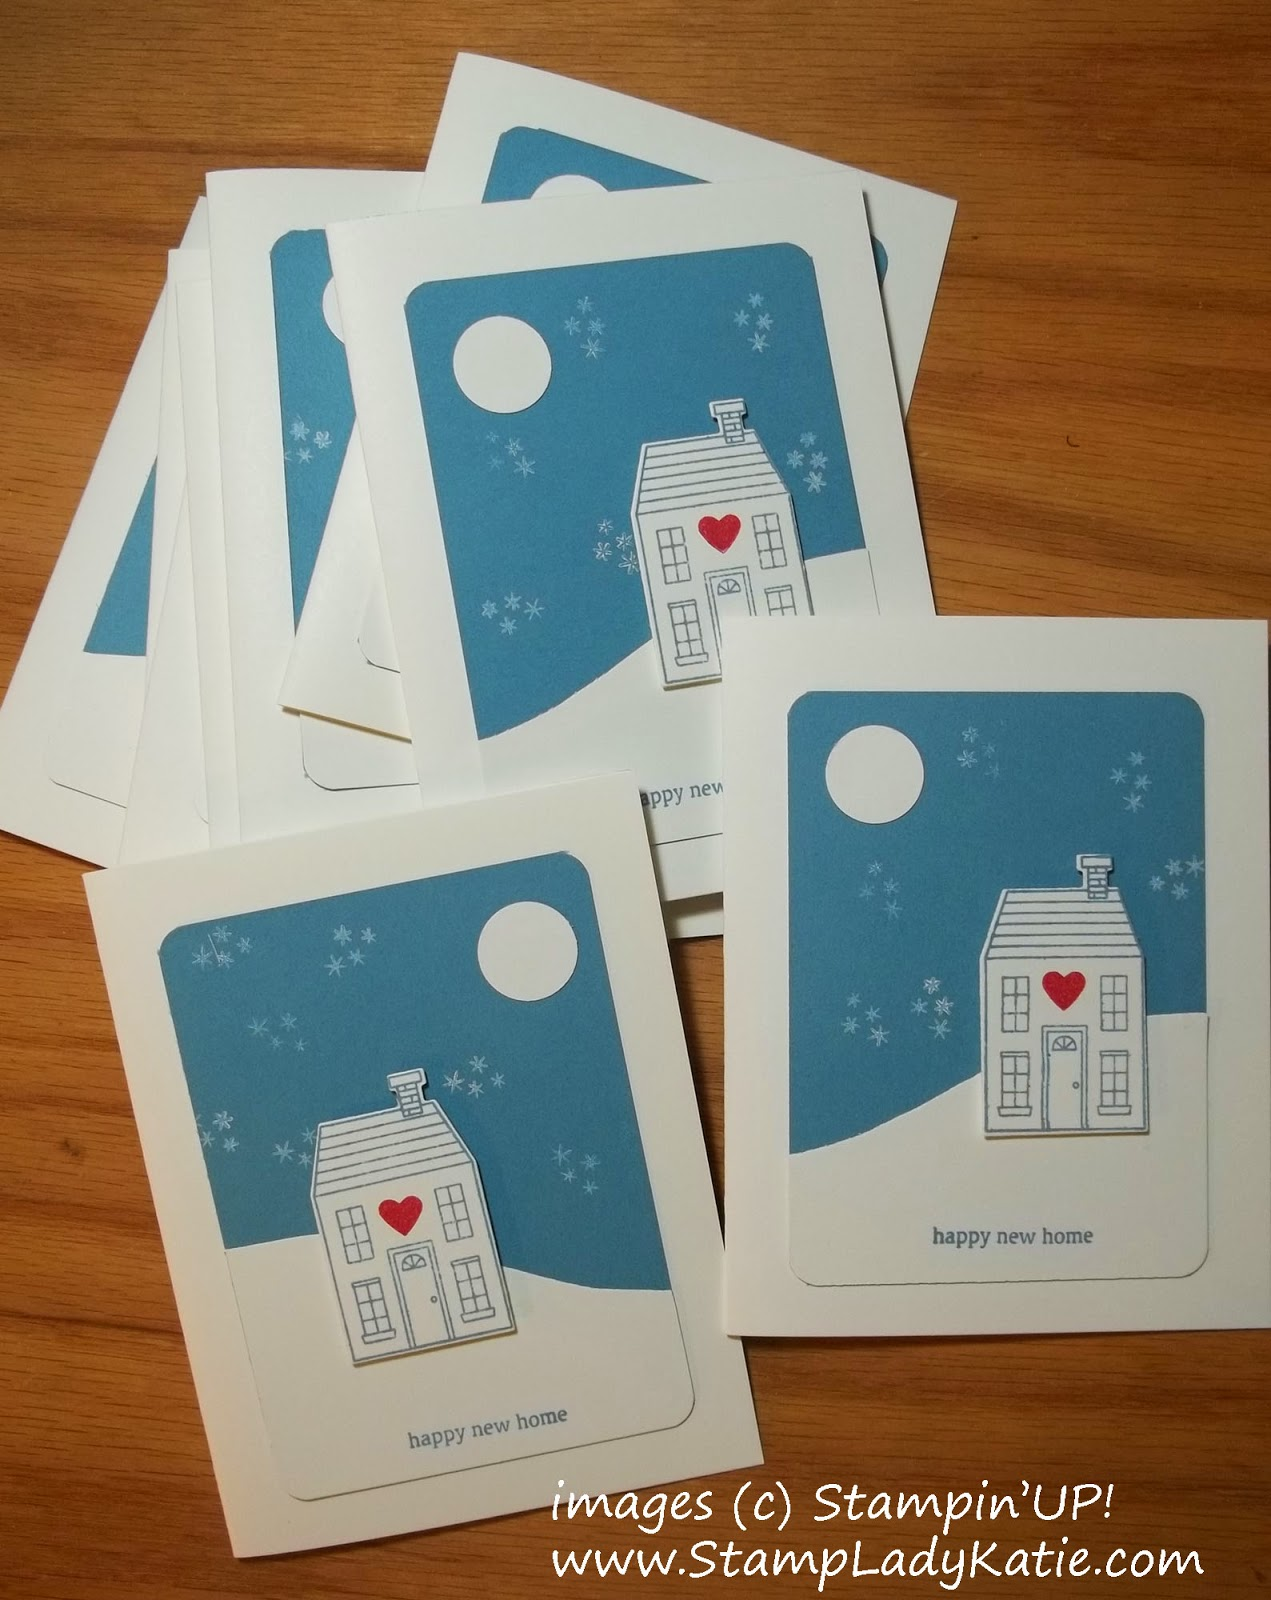 Cards made with the Holiday Home Stamps and Framelits.